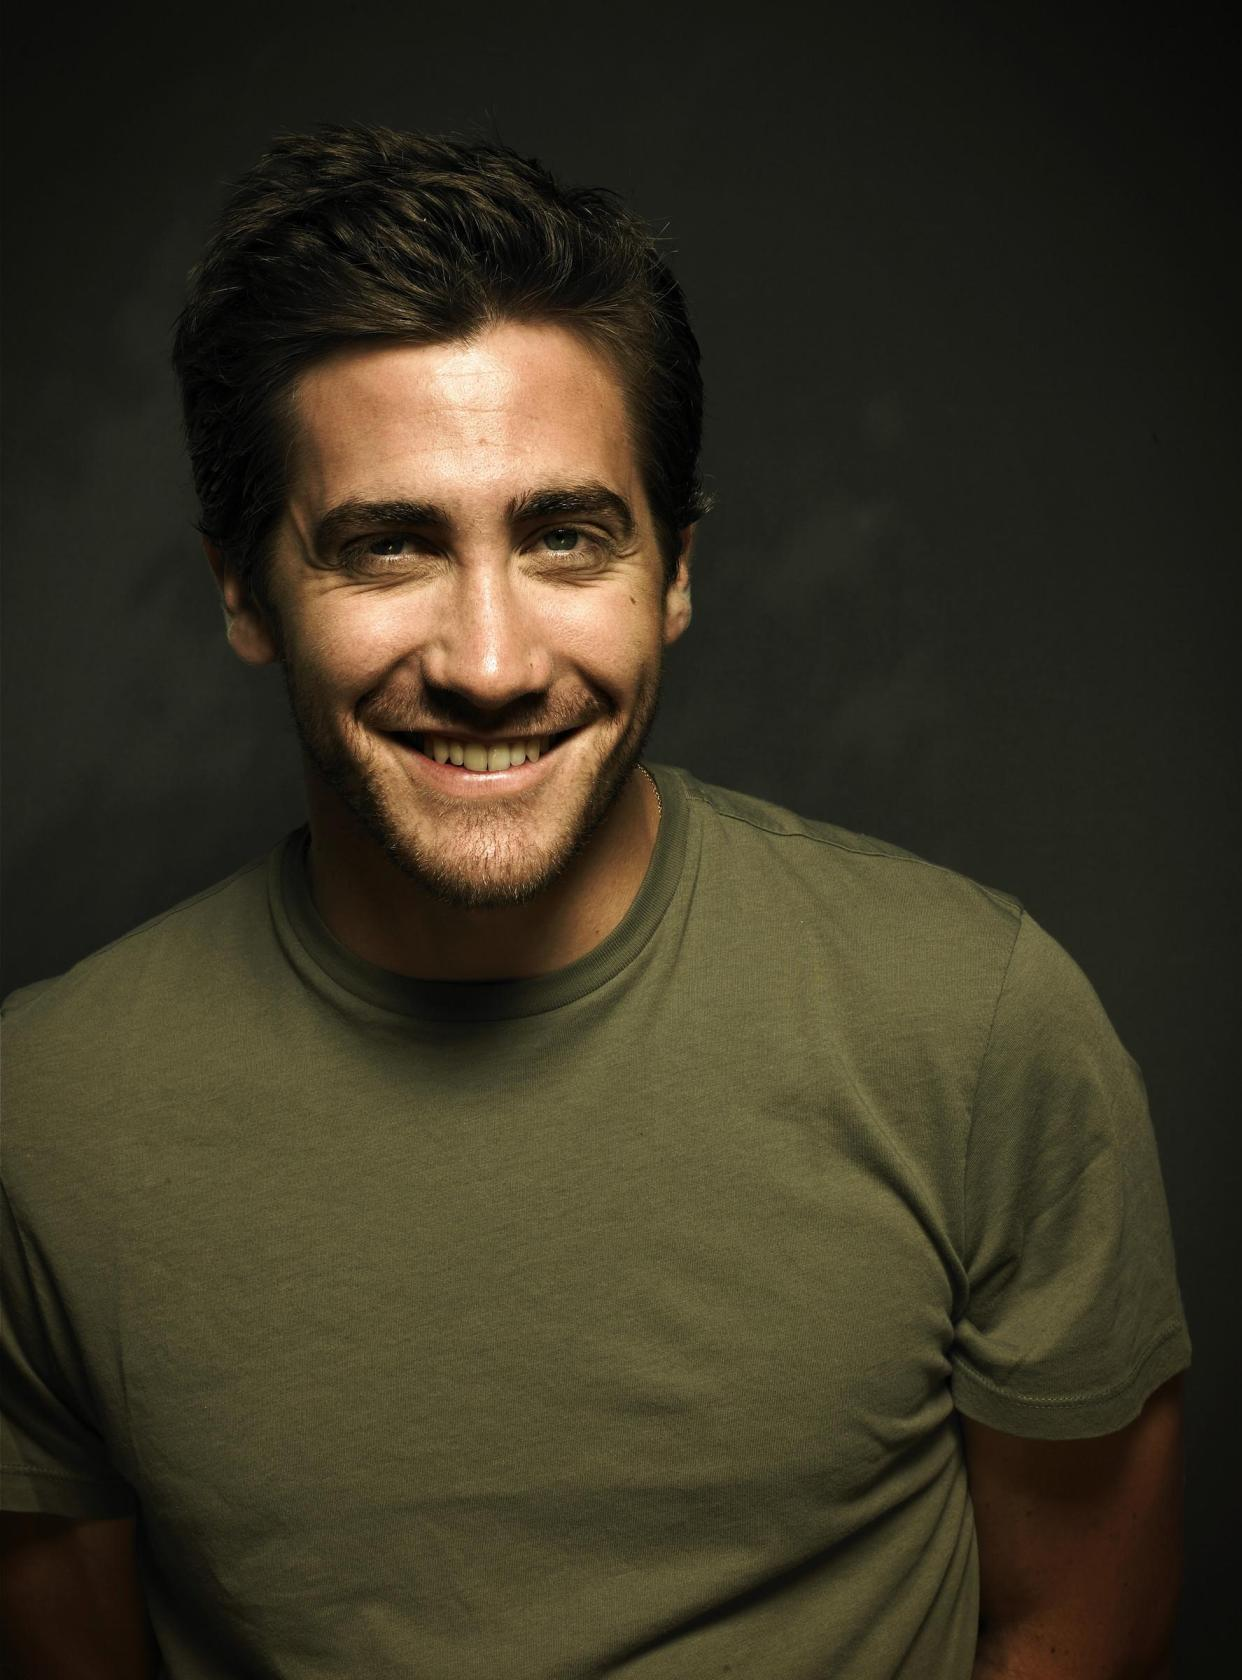 Jake Gyllenhaal royalty images - smiling (large)